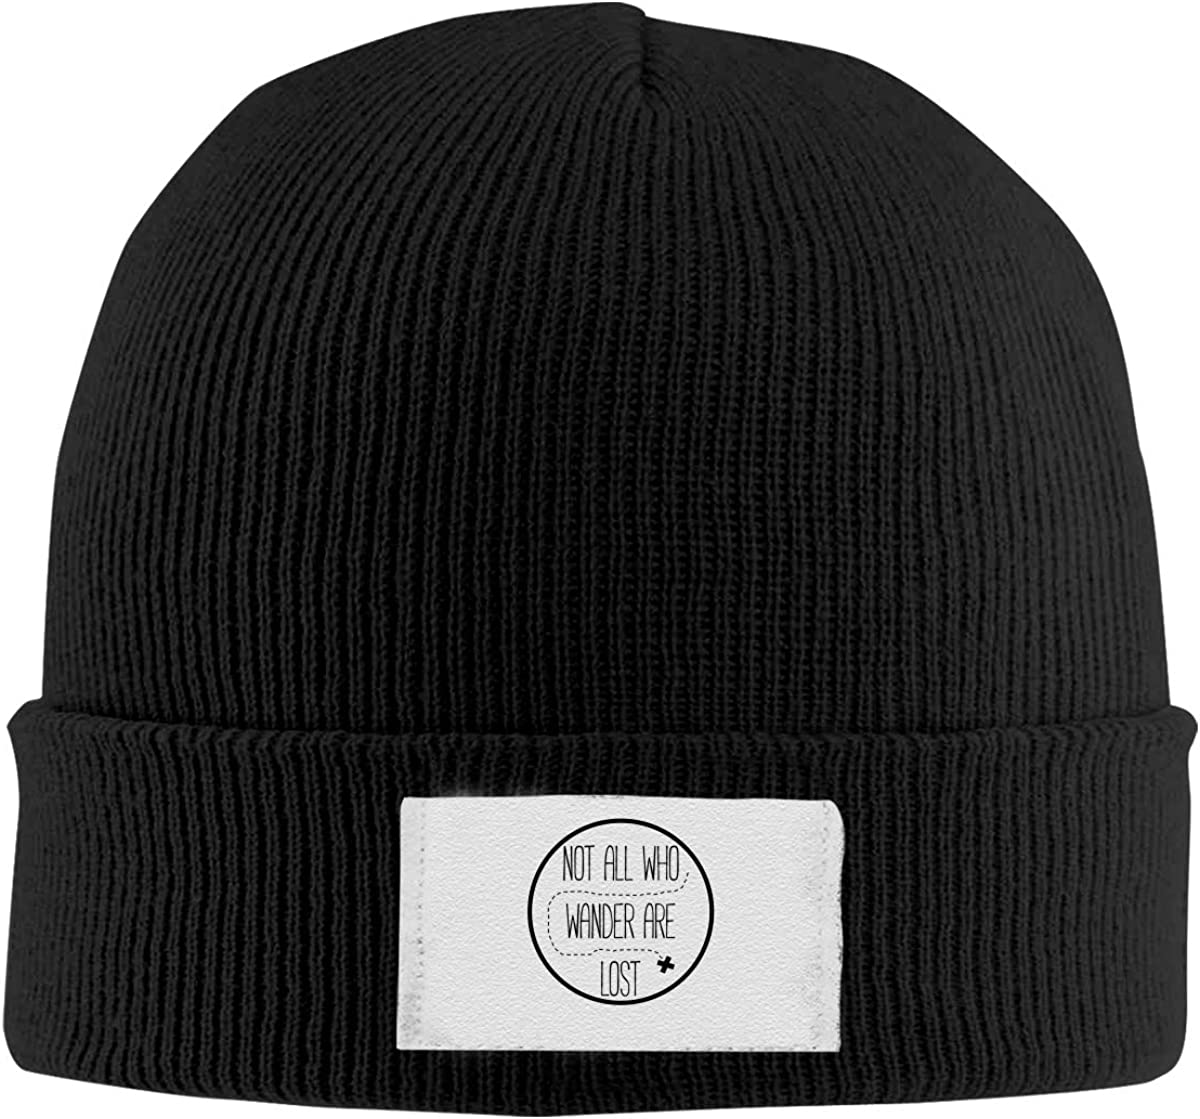 Stretchy Cuff Beanie Hat Black Skull Caps Not All Who Wander are Lost Logo Winter Warm Knit Hats